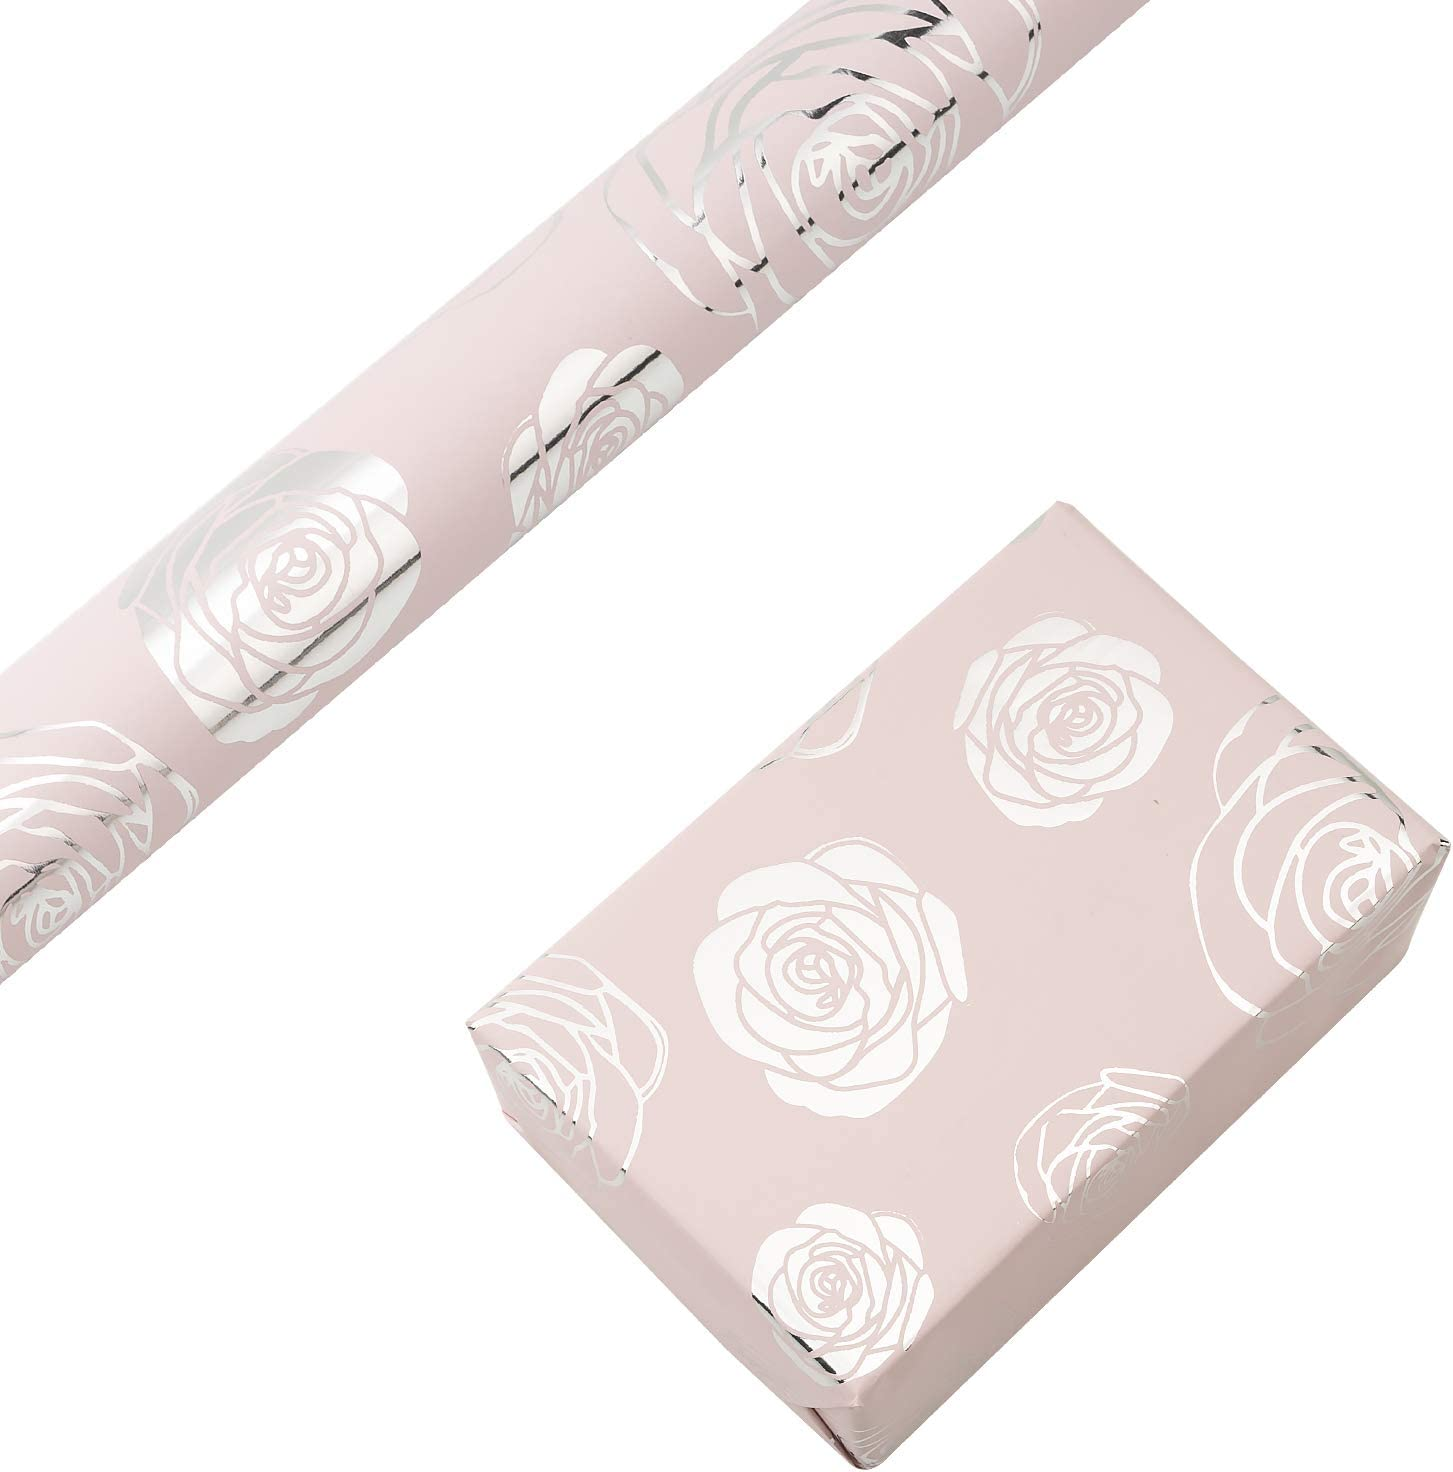 RUSPEPA Gift Wrapping Paper Roll-Silver Foil Rose Baby Pink Background Design for Wedding, Birthday, Baby-shower, Congrats, and Holiday Gifts - 30 Inch X 16 Feet